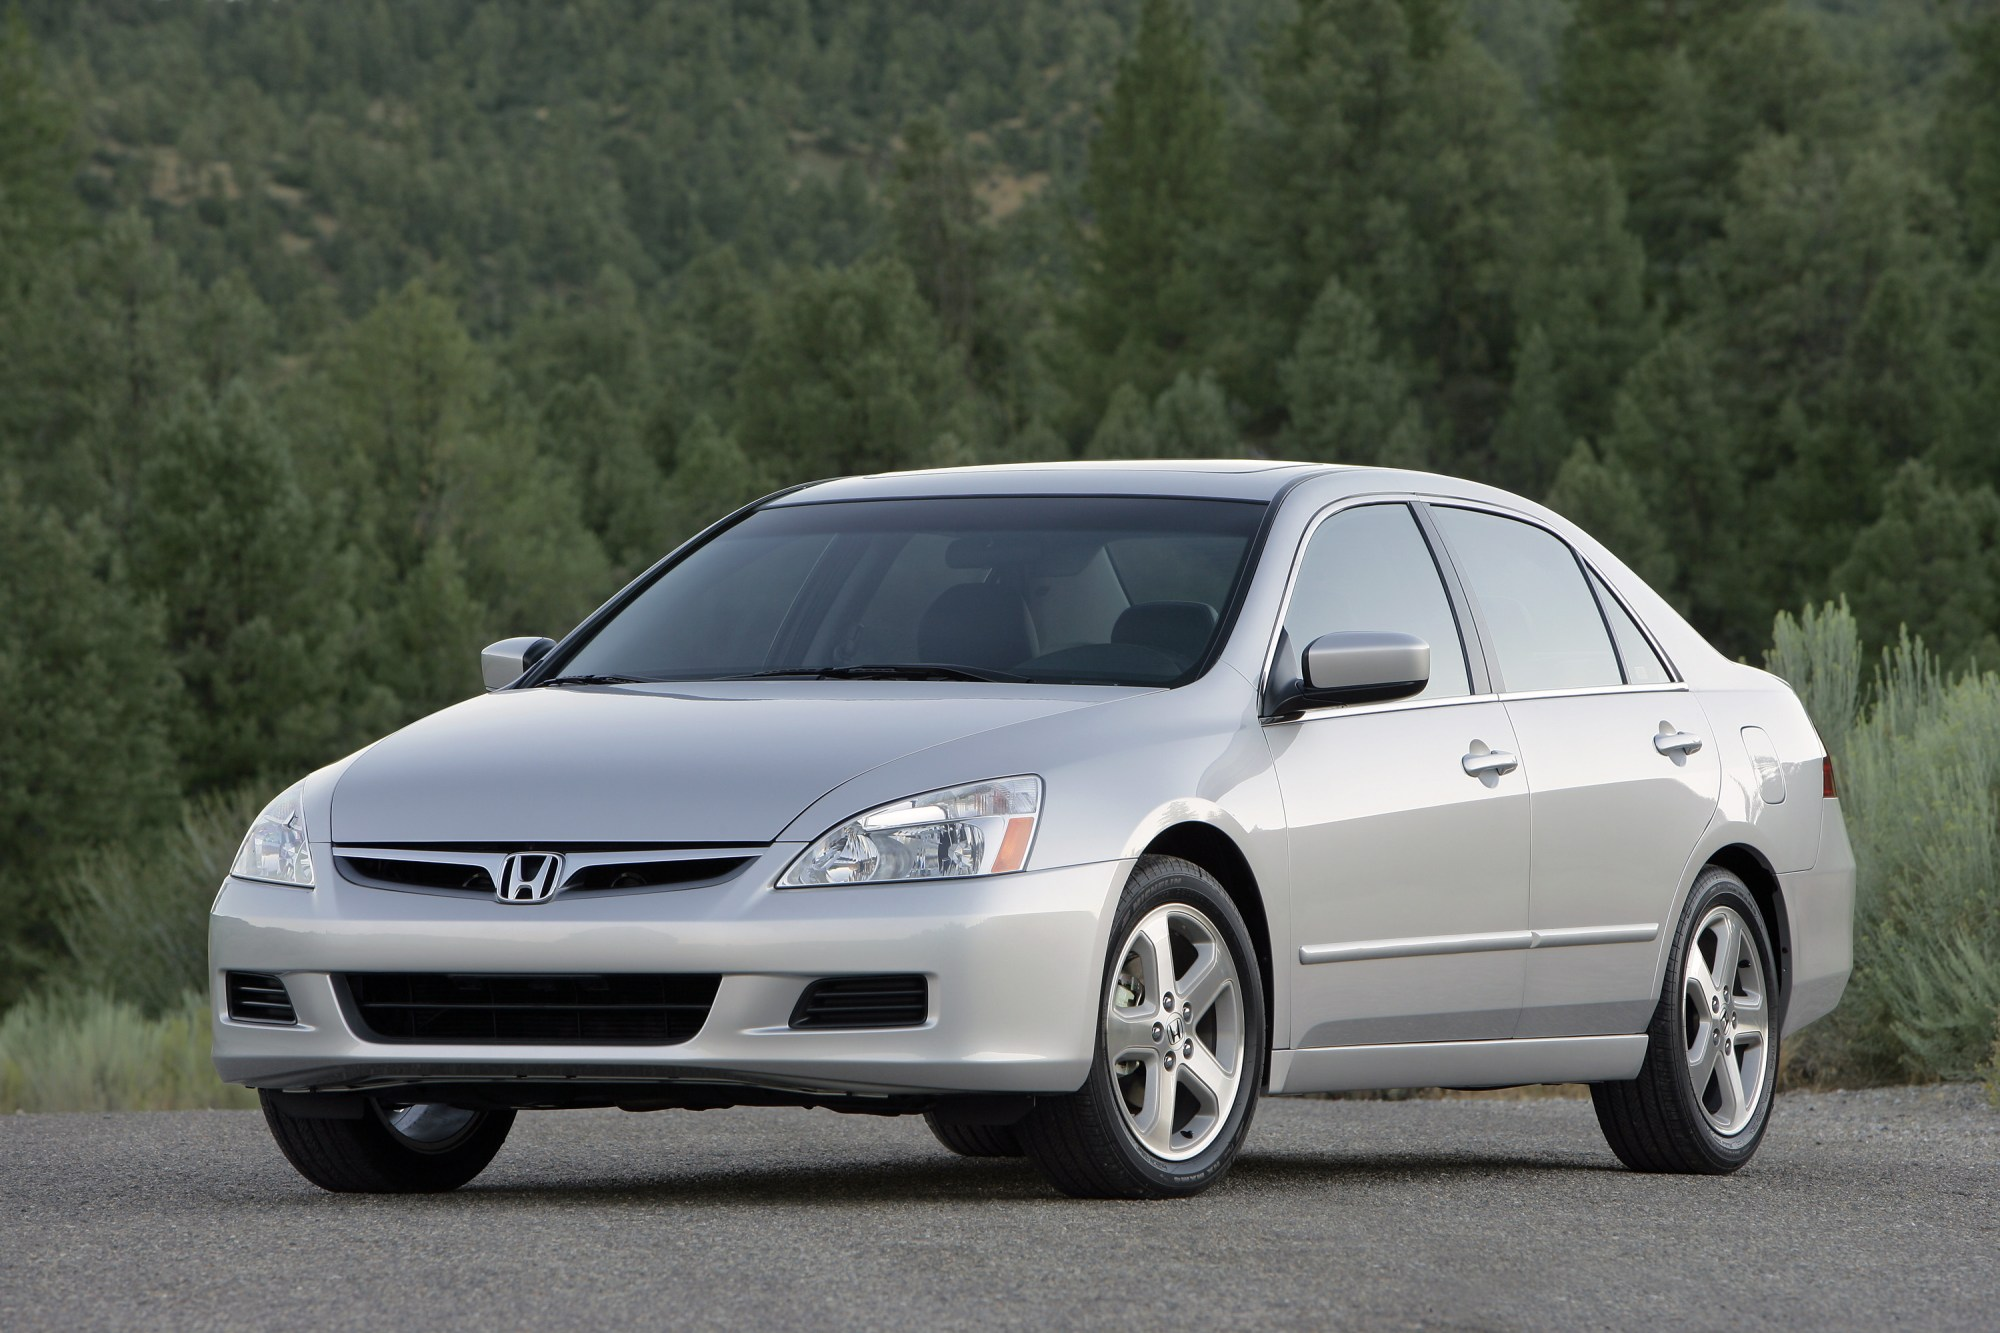 hight resolution of 2006 honda accord